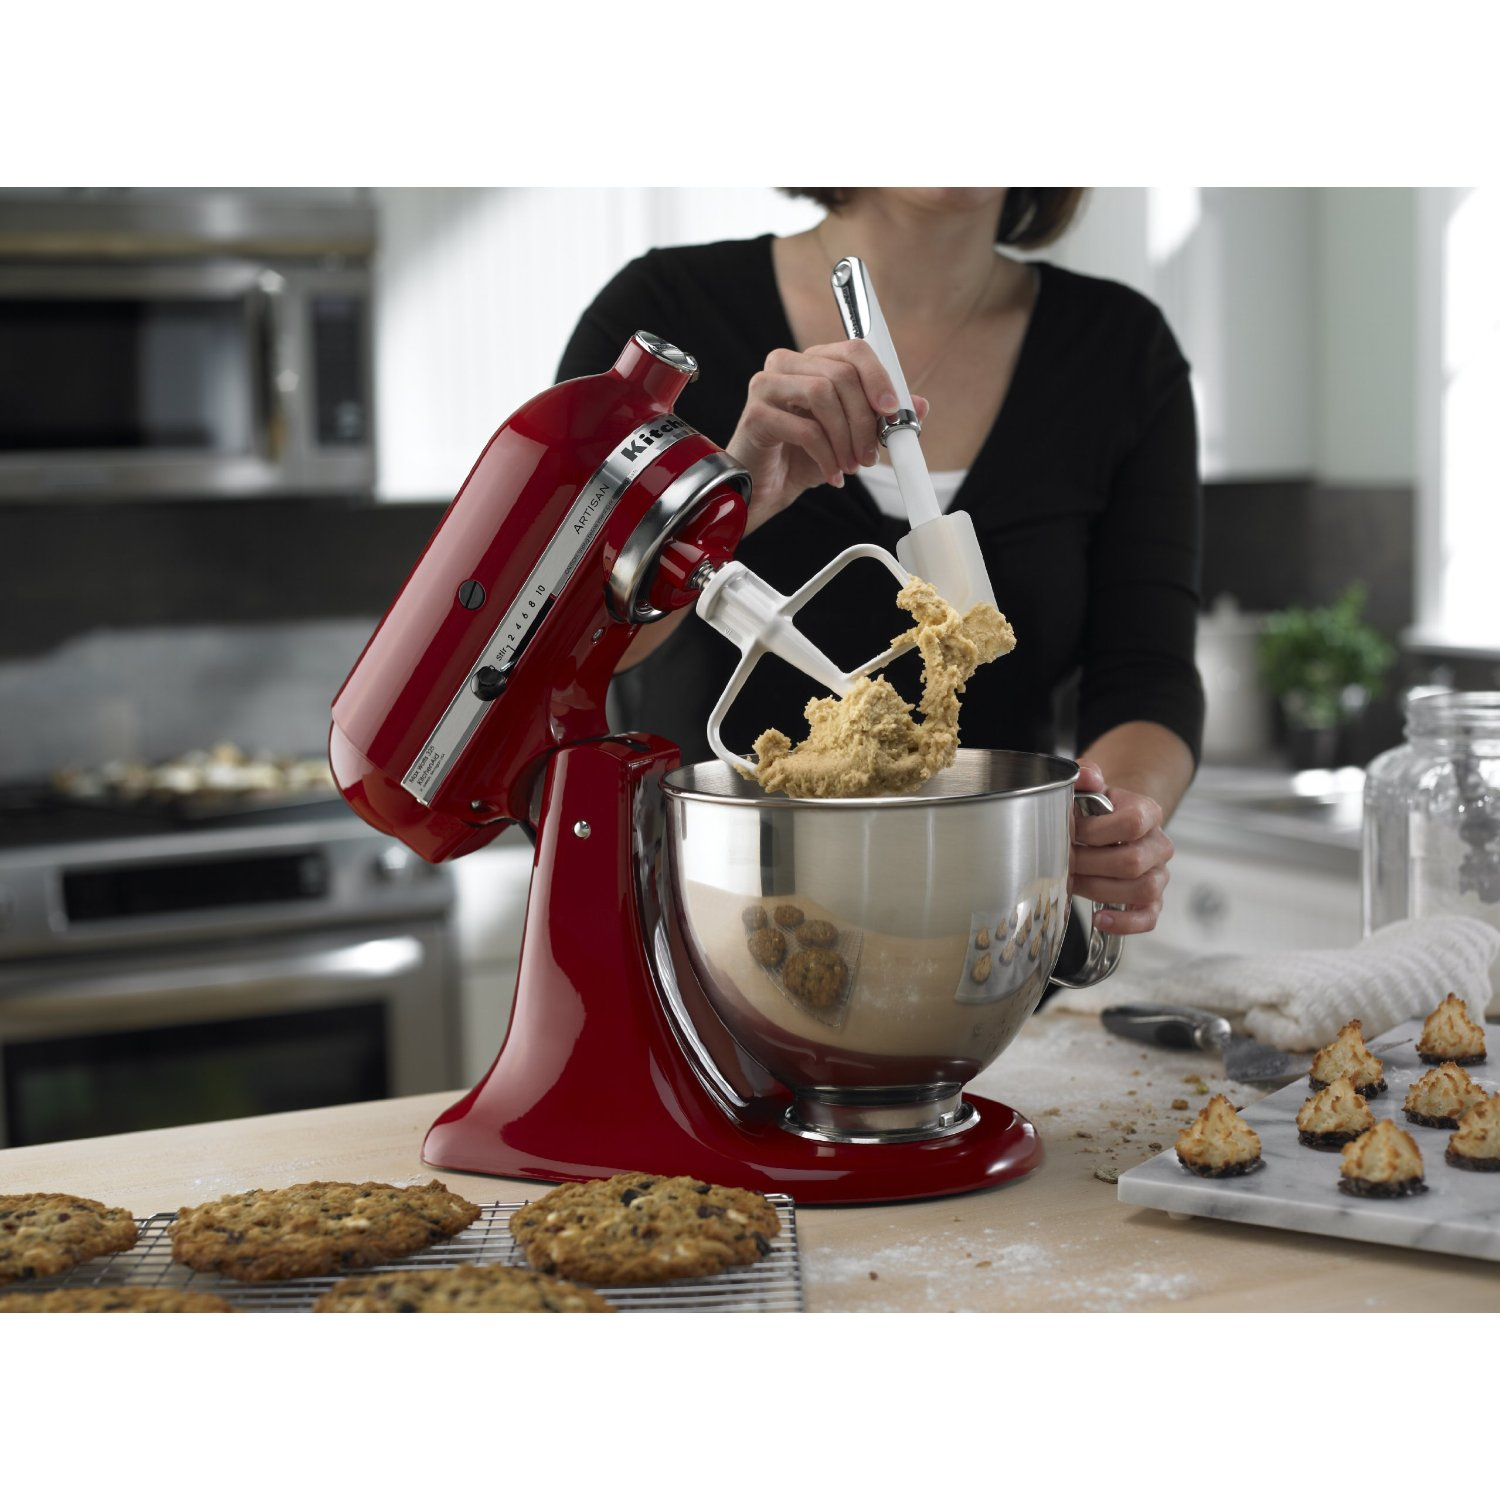 What She Really Wants for Valentine s Day A KitchenAid Mixer